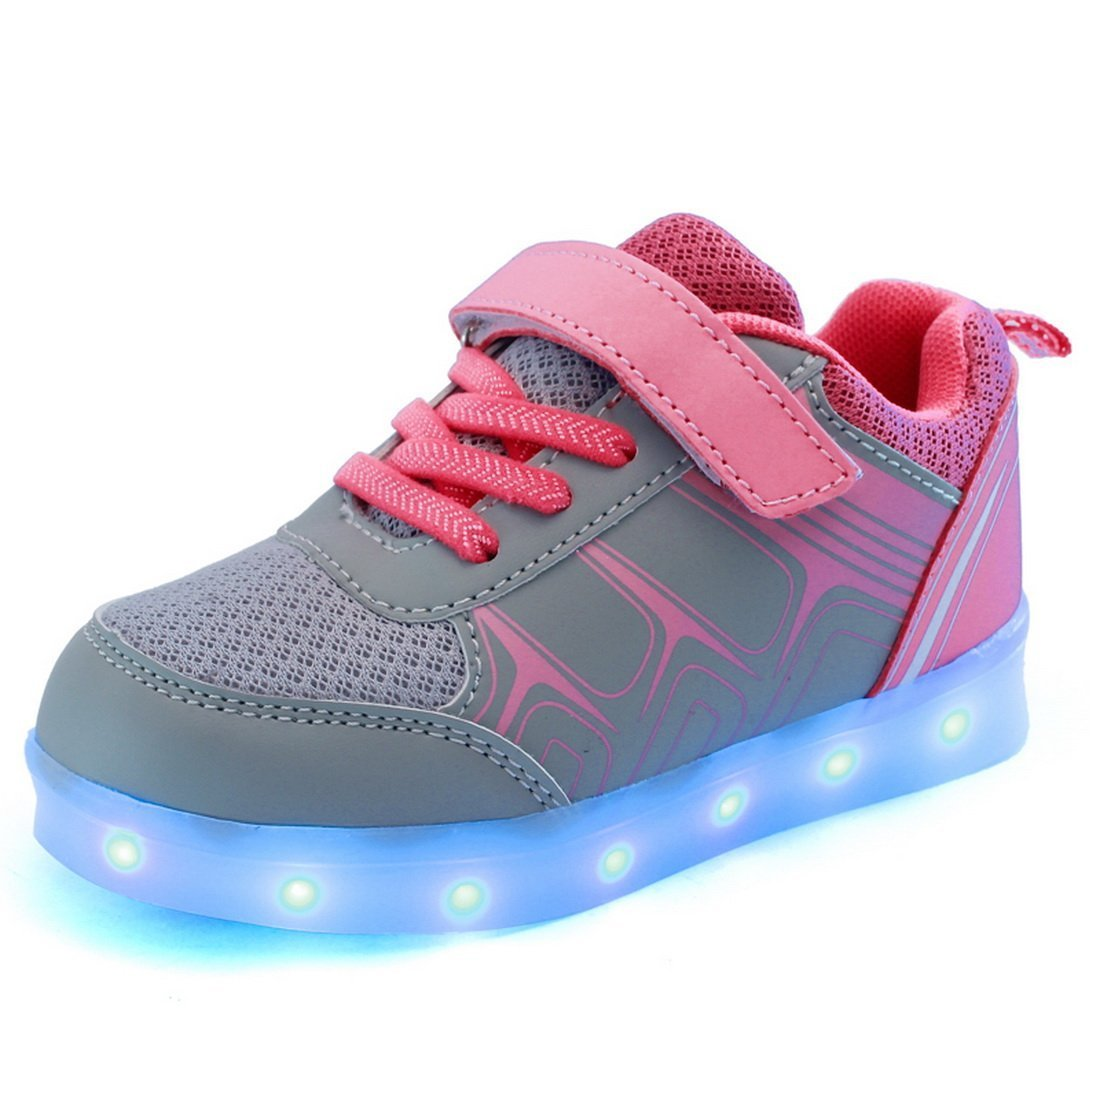 sexphd Childrens Rechargeable Luminous Kids LED Light Up Sneakers for Girls and Boys